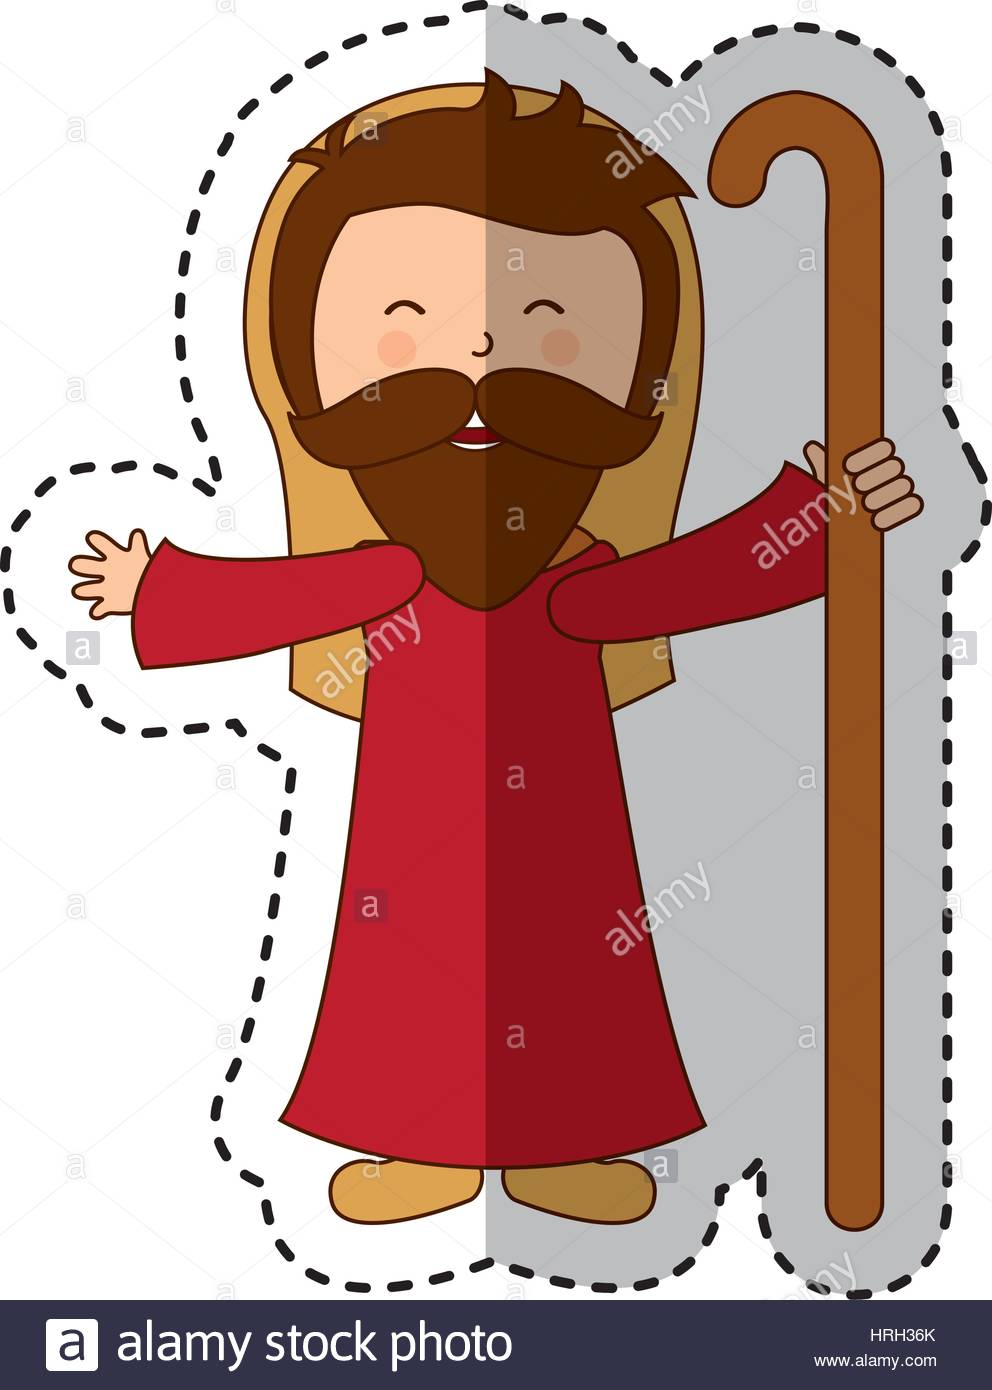 Father Of Jesus Stock Photos & Father Of Jesus Stock Images.